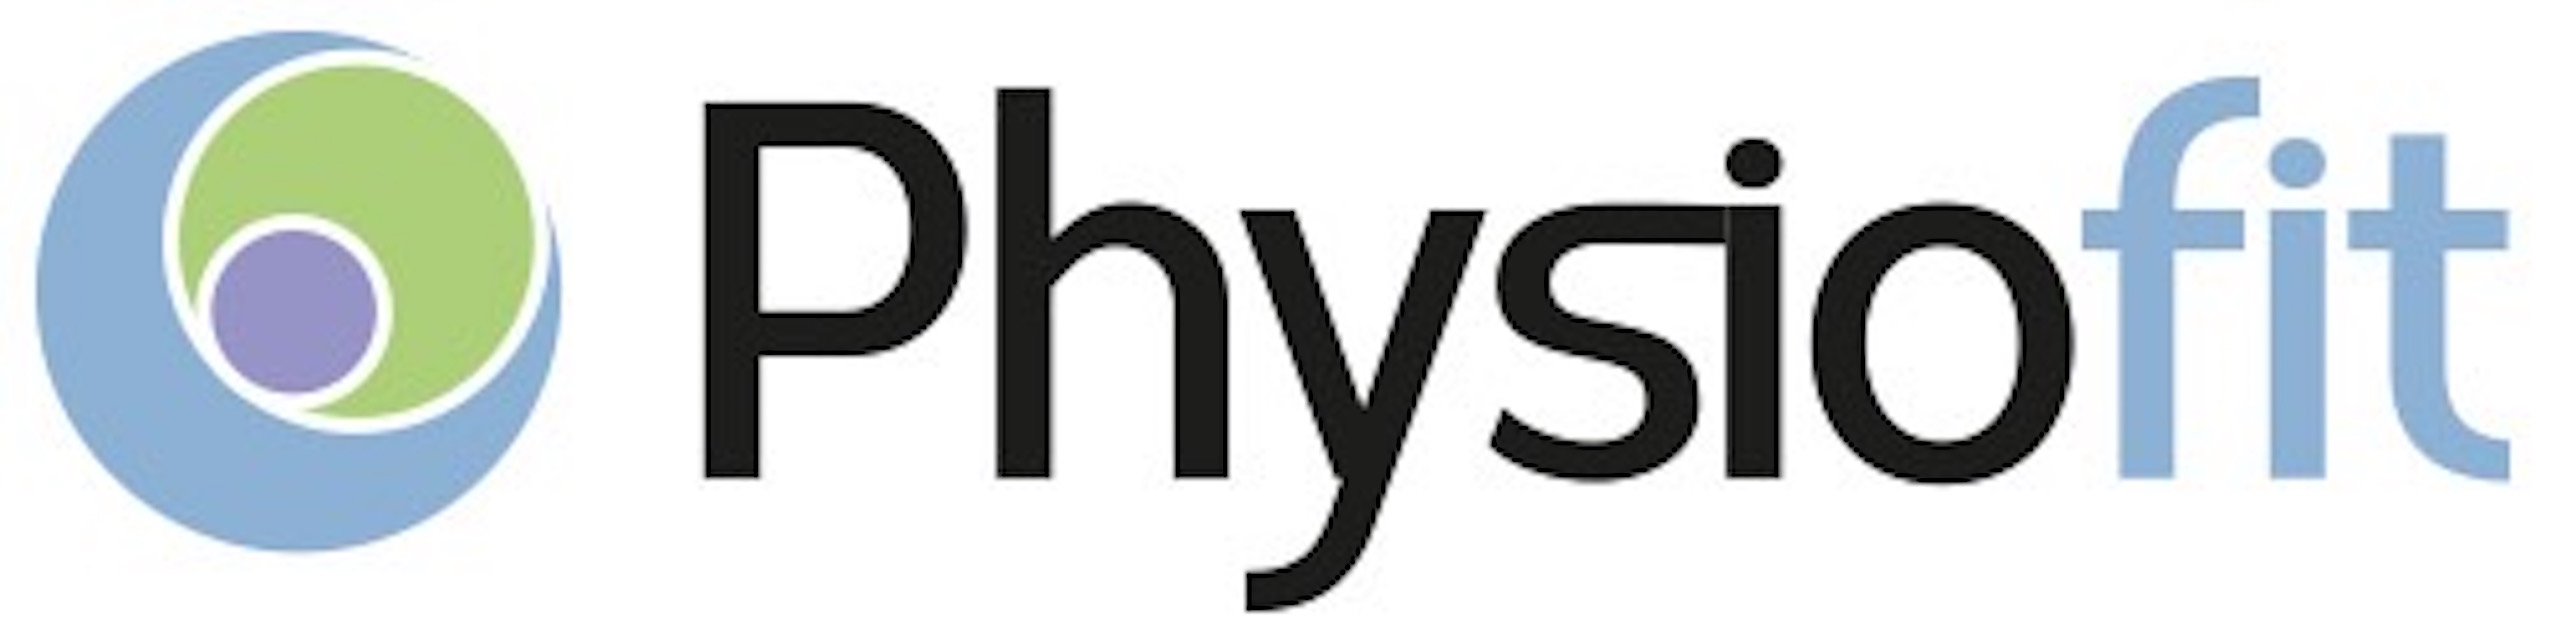 Physiofit Newmarket's logo